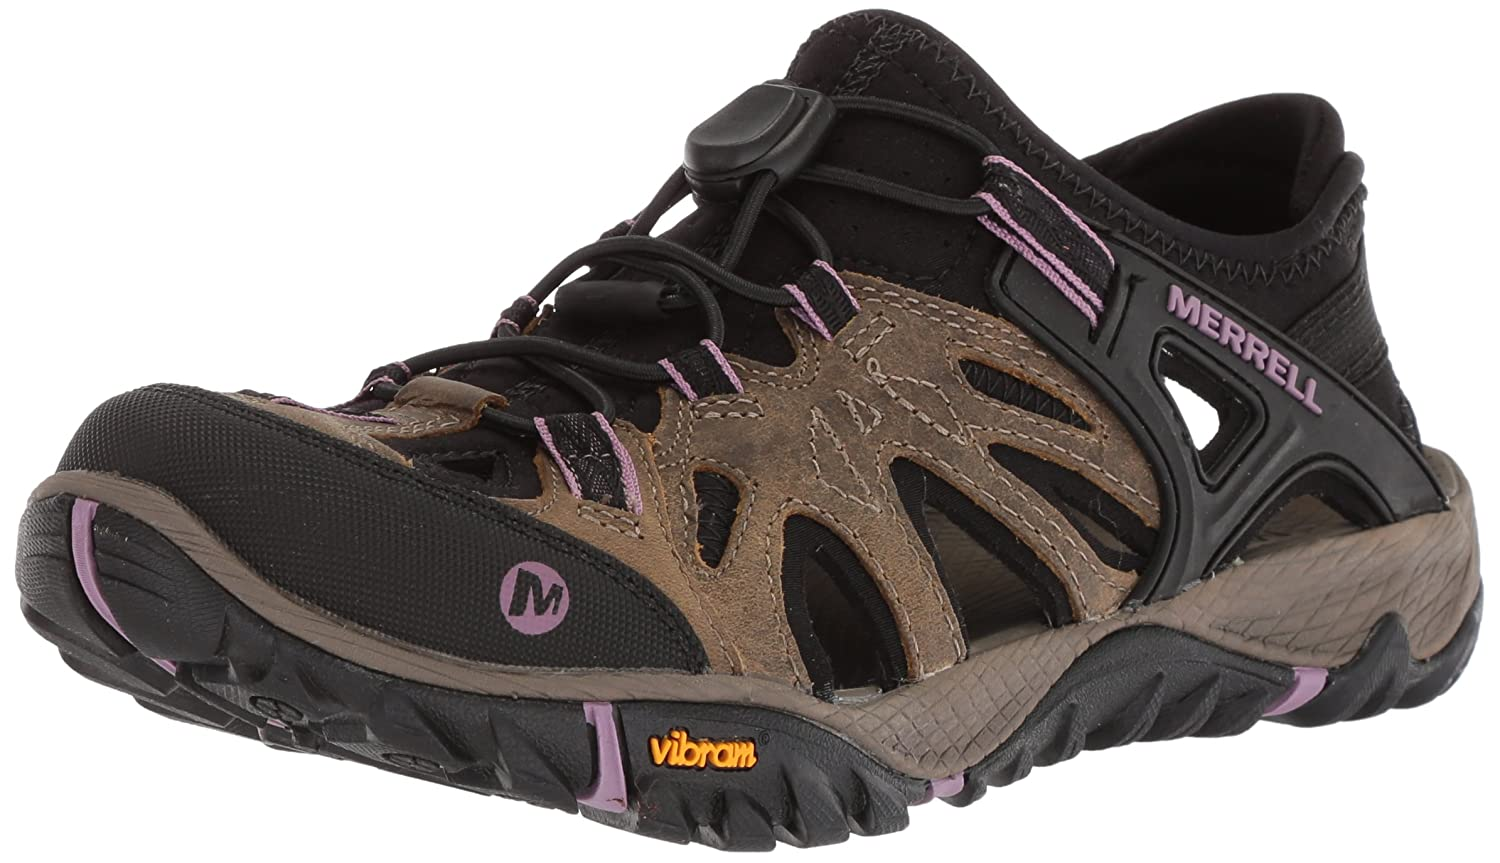 Merrell Women's All Out Blaze Sieve Water Shoe B071Z934QZ 9.5 B(M) US|Stucco